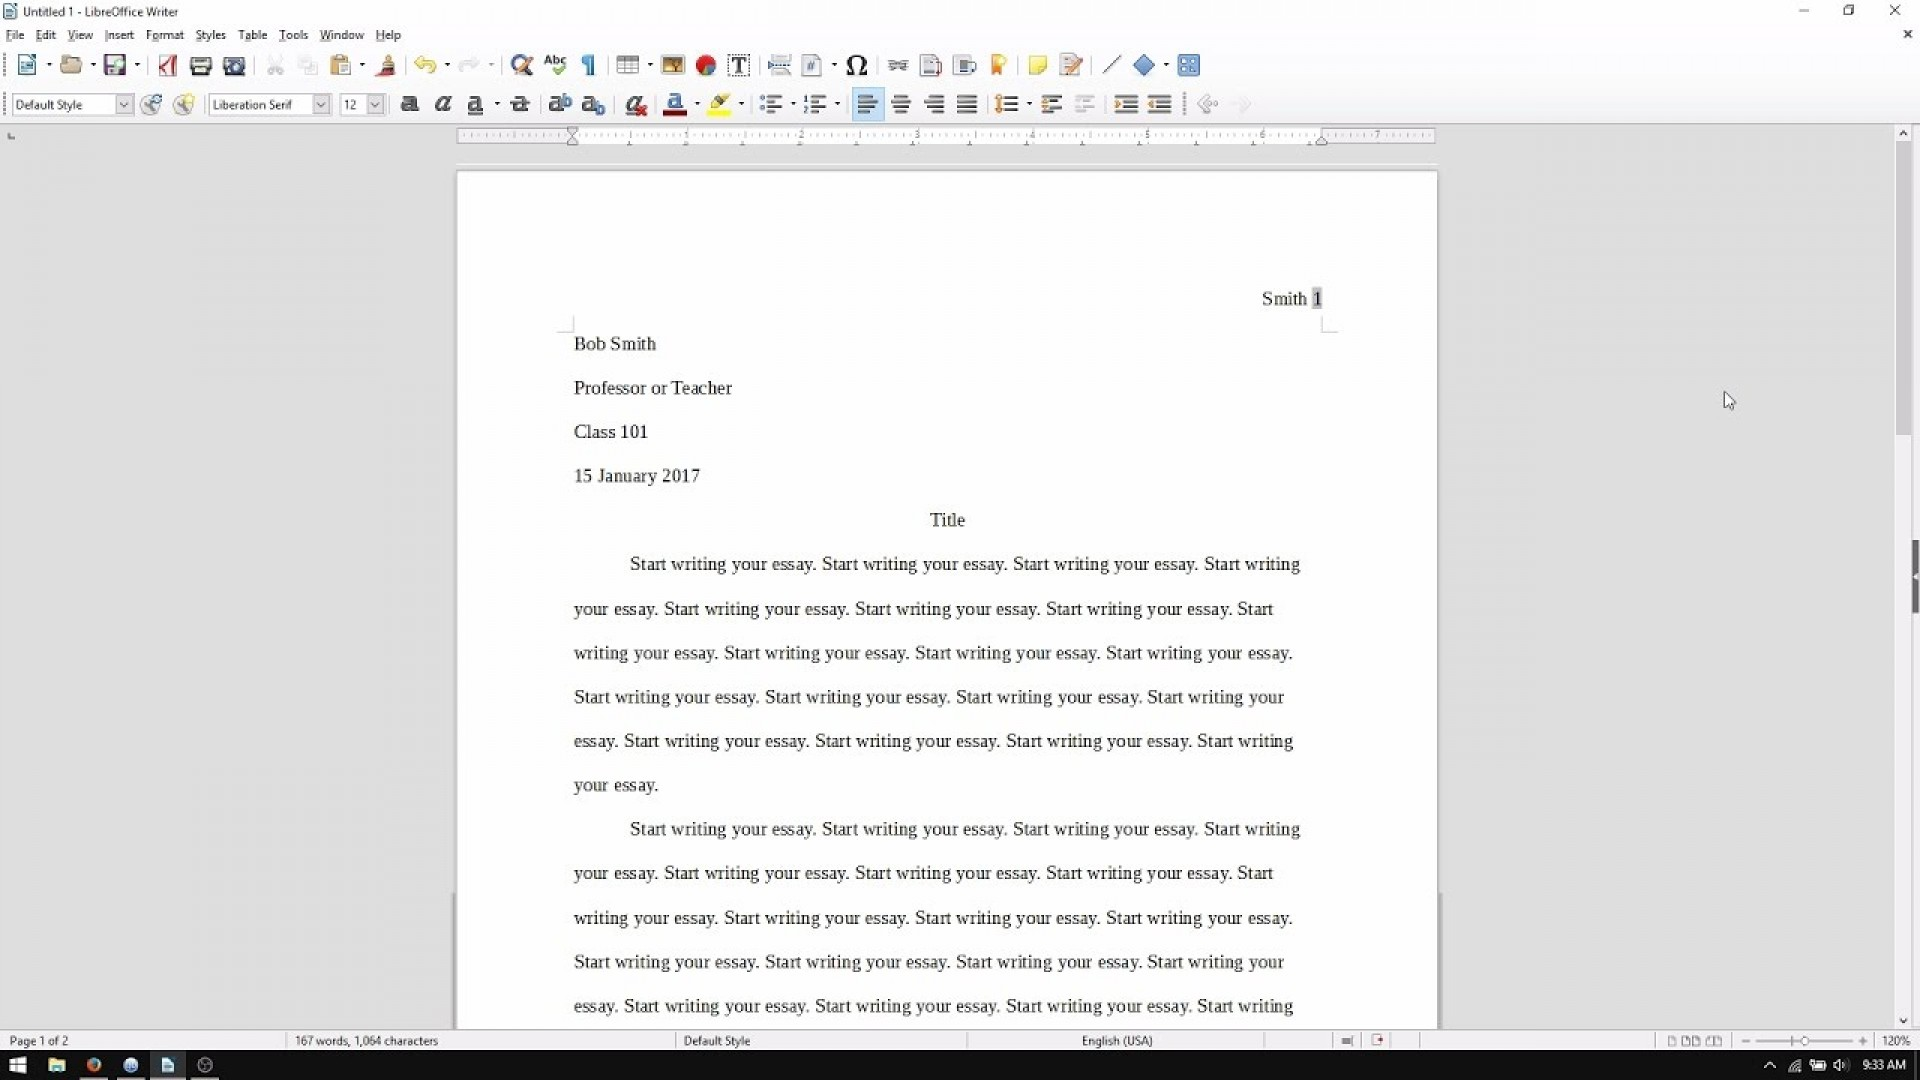 003 Essay Example How To Set Up An Singular My Paper In Mla Format A College 1920